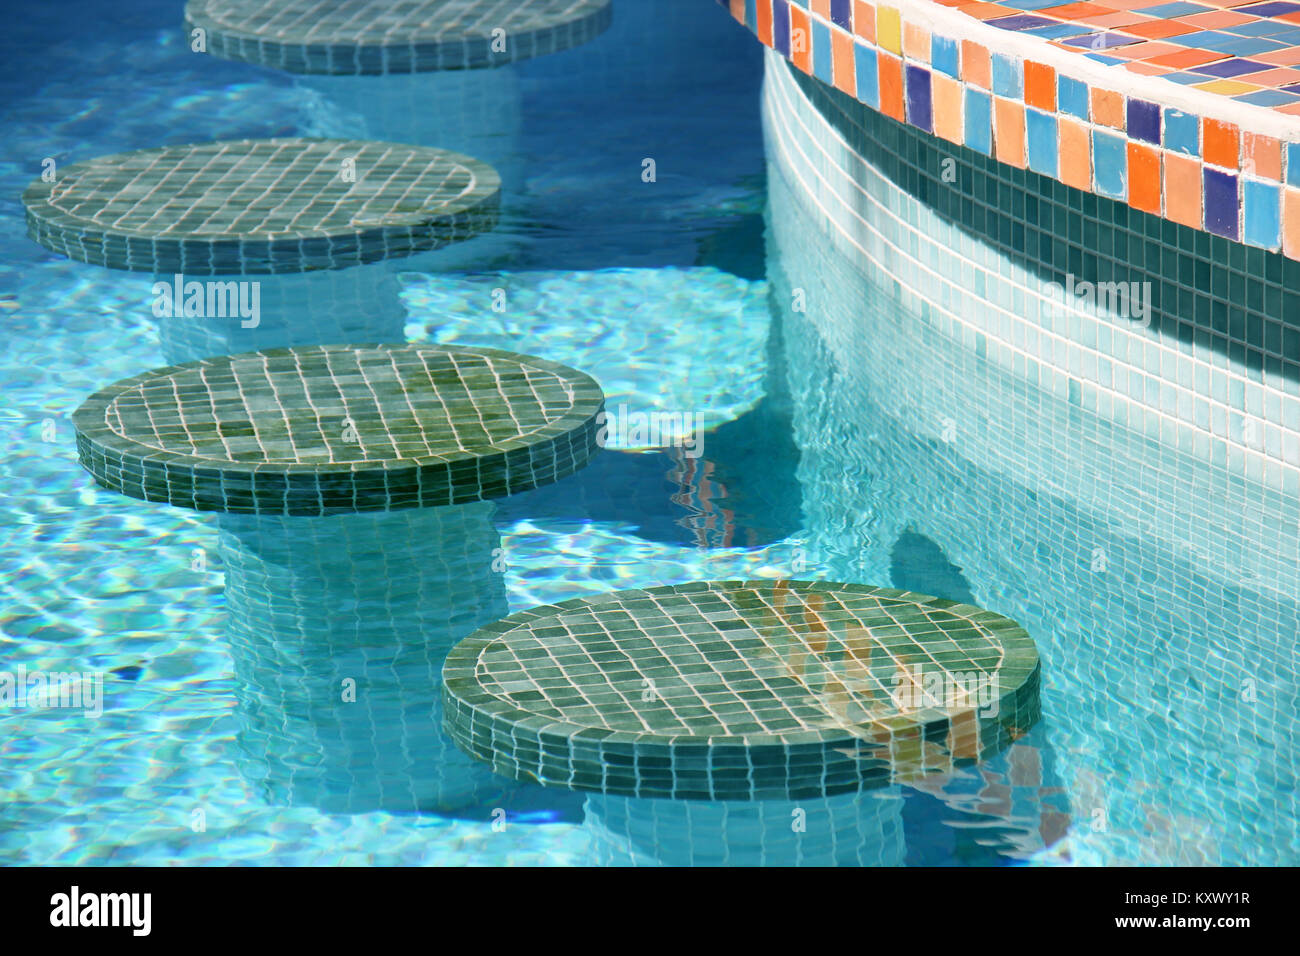 Colourful mosaic bar stools in a swimming pool Stock Photo ...